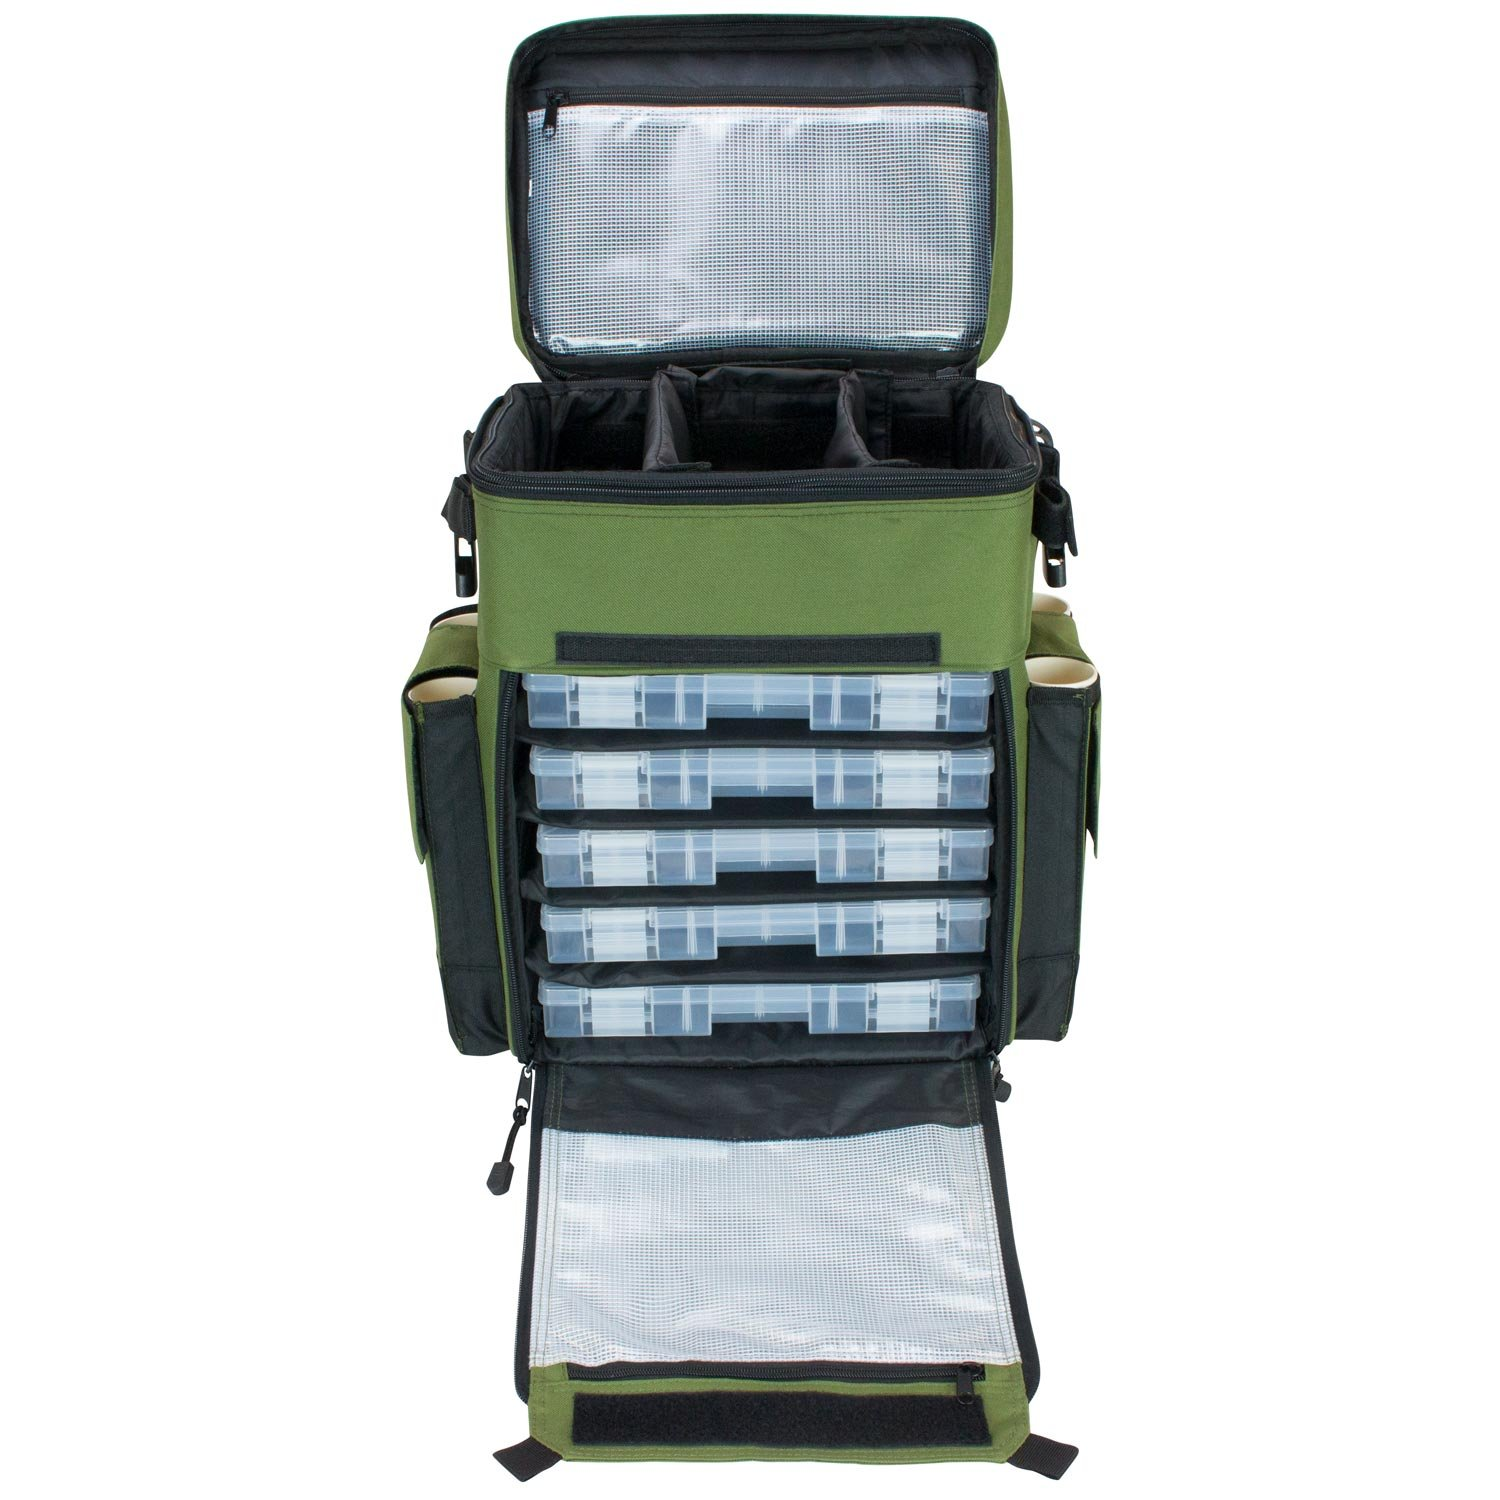 Amazon.com  Elkton Outdoors Rolling Tackle Box Green / L 15.7 x W 9.6 x H 18.5 inches / 11 pounds / Waterproof / 5 Retractable Compartments / 4 Rod Holders ...  sc 1 st  Amazon.com & Amazon.com : Elkton Outdoors Rolling Tackle Box Green / L 15.7 x W ... Aboutintivar.Com